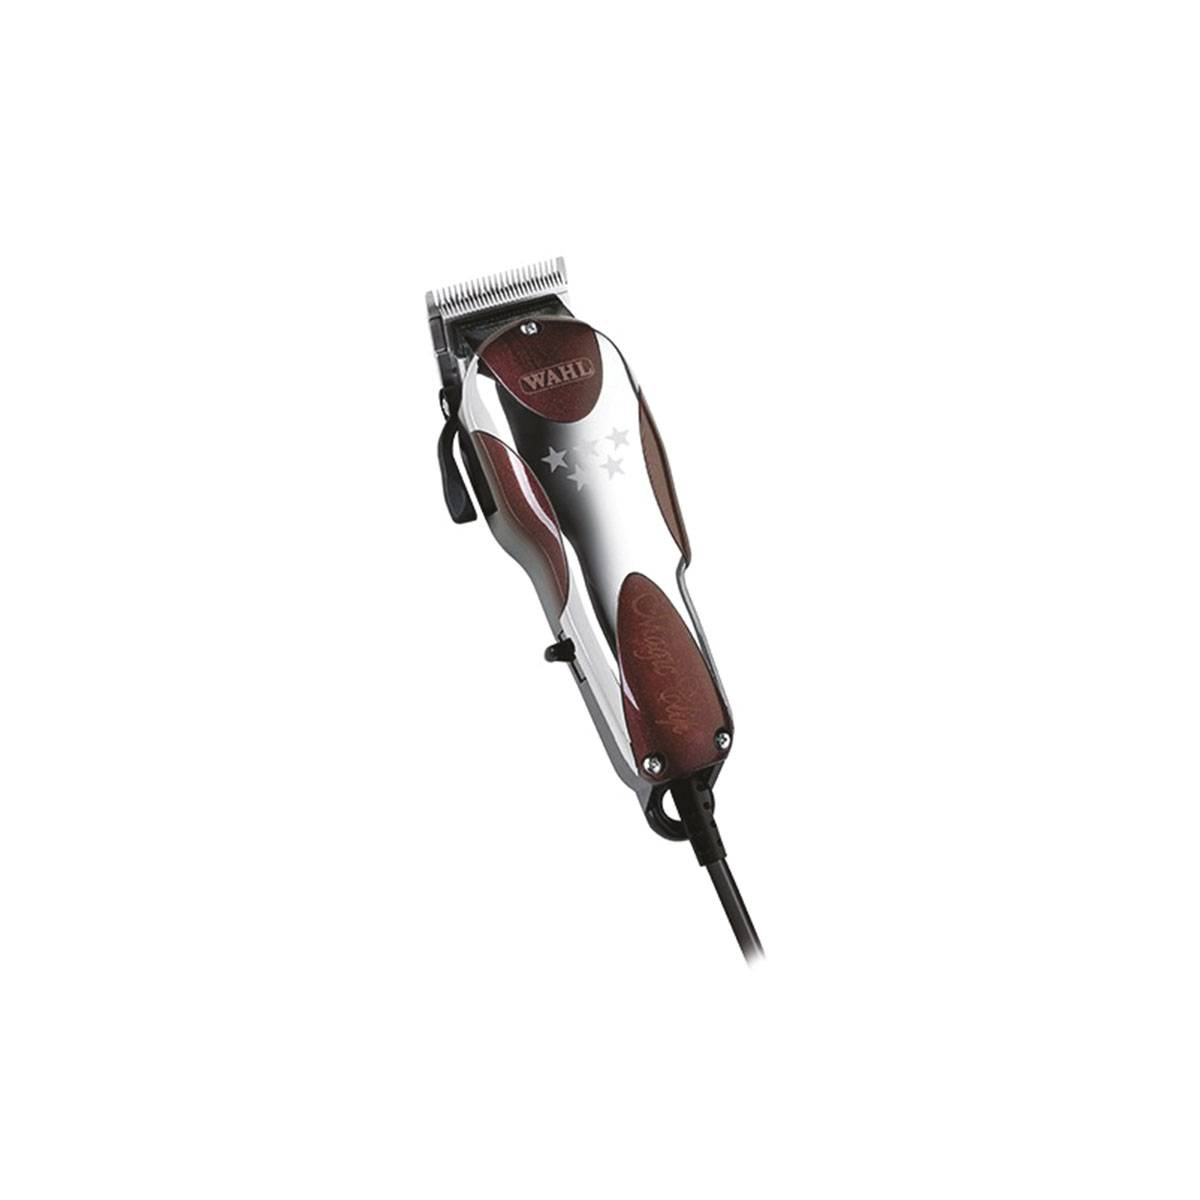 Tosatrice Magic Clip   Wahl- 5 Star*c*cat